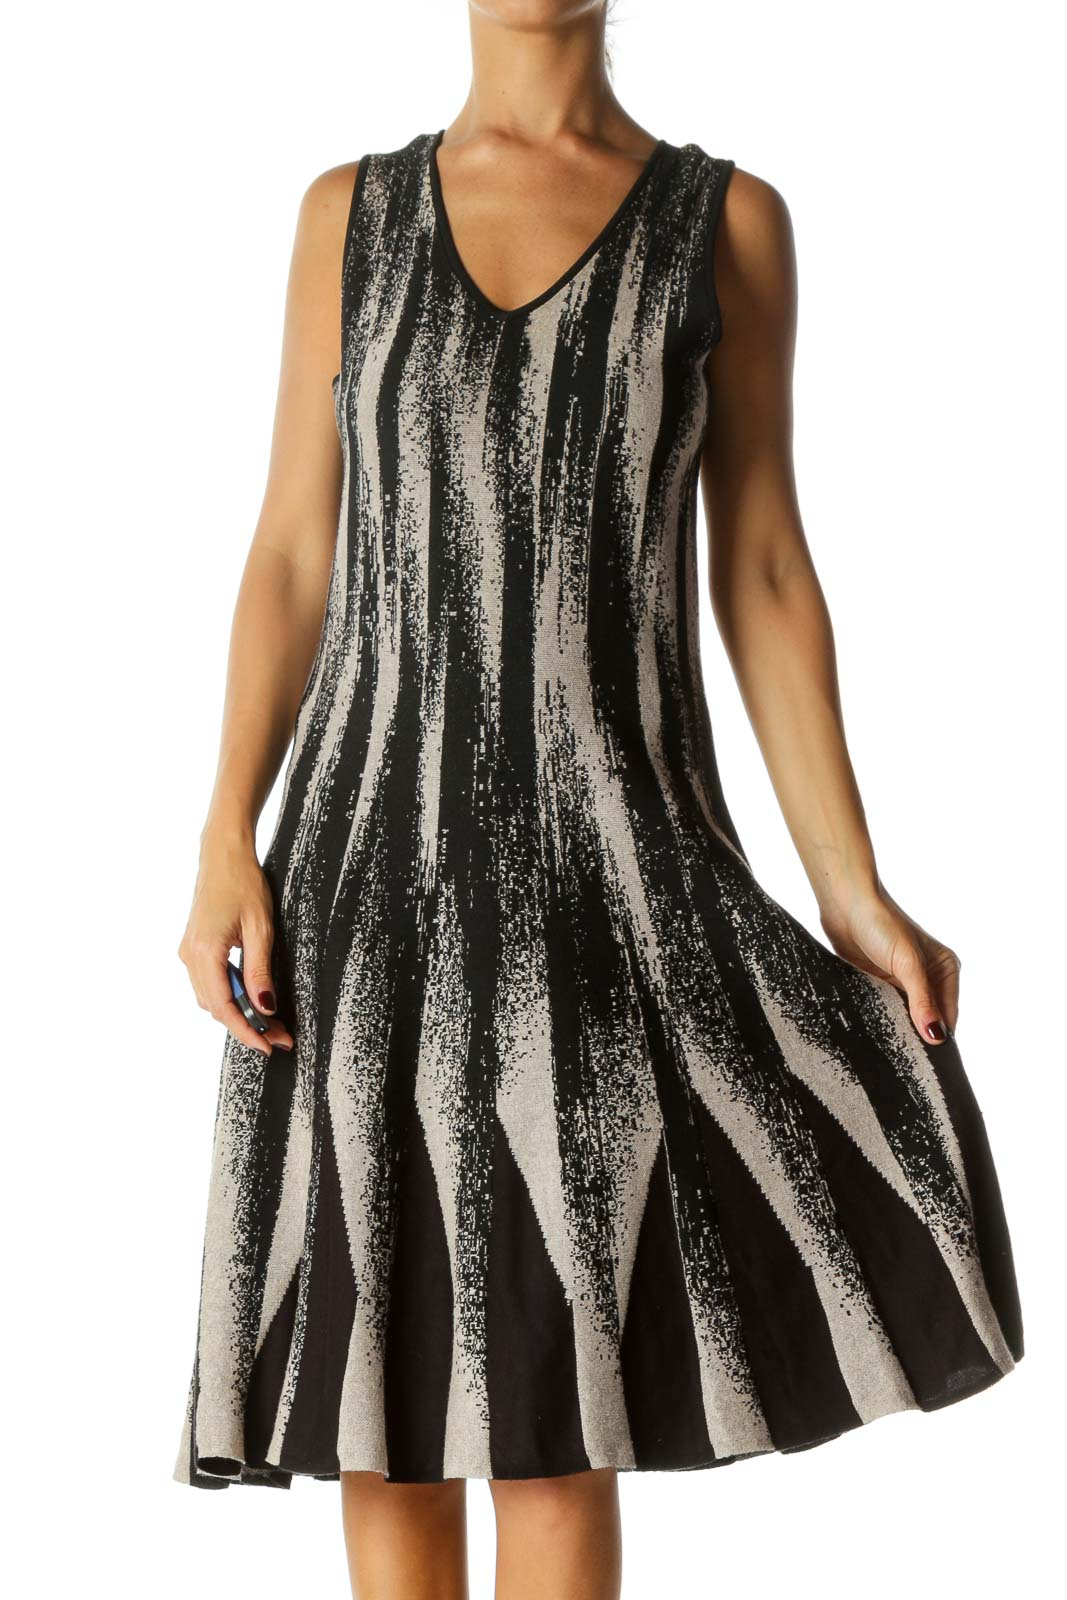 Black Beige Silver Thread V-Neck Knit Textured Flared Dress